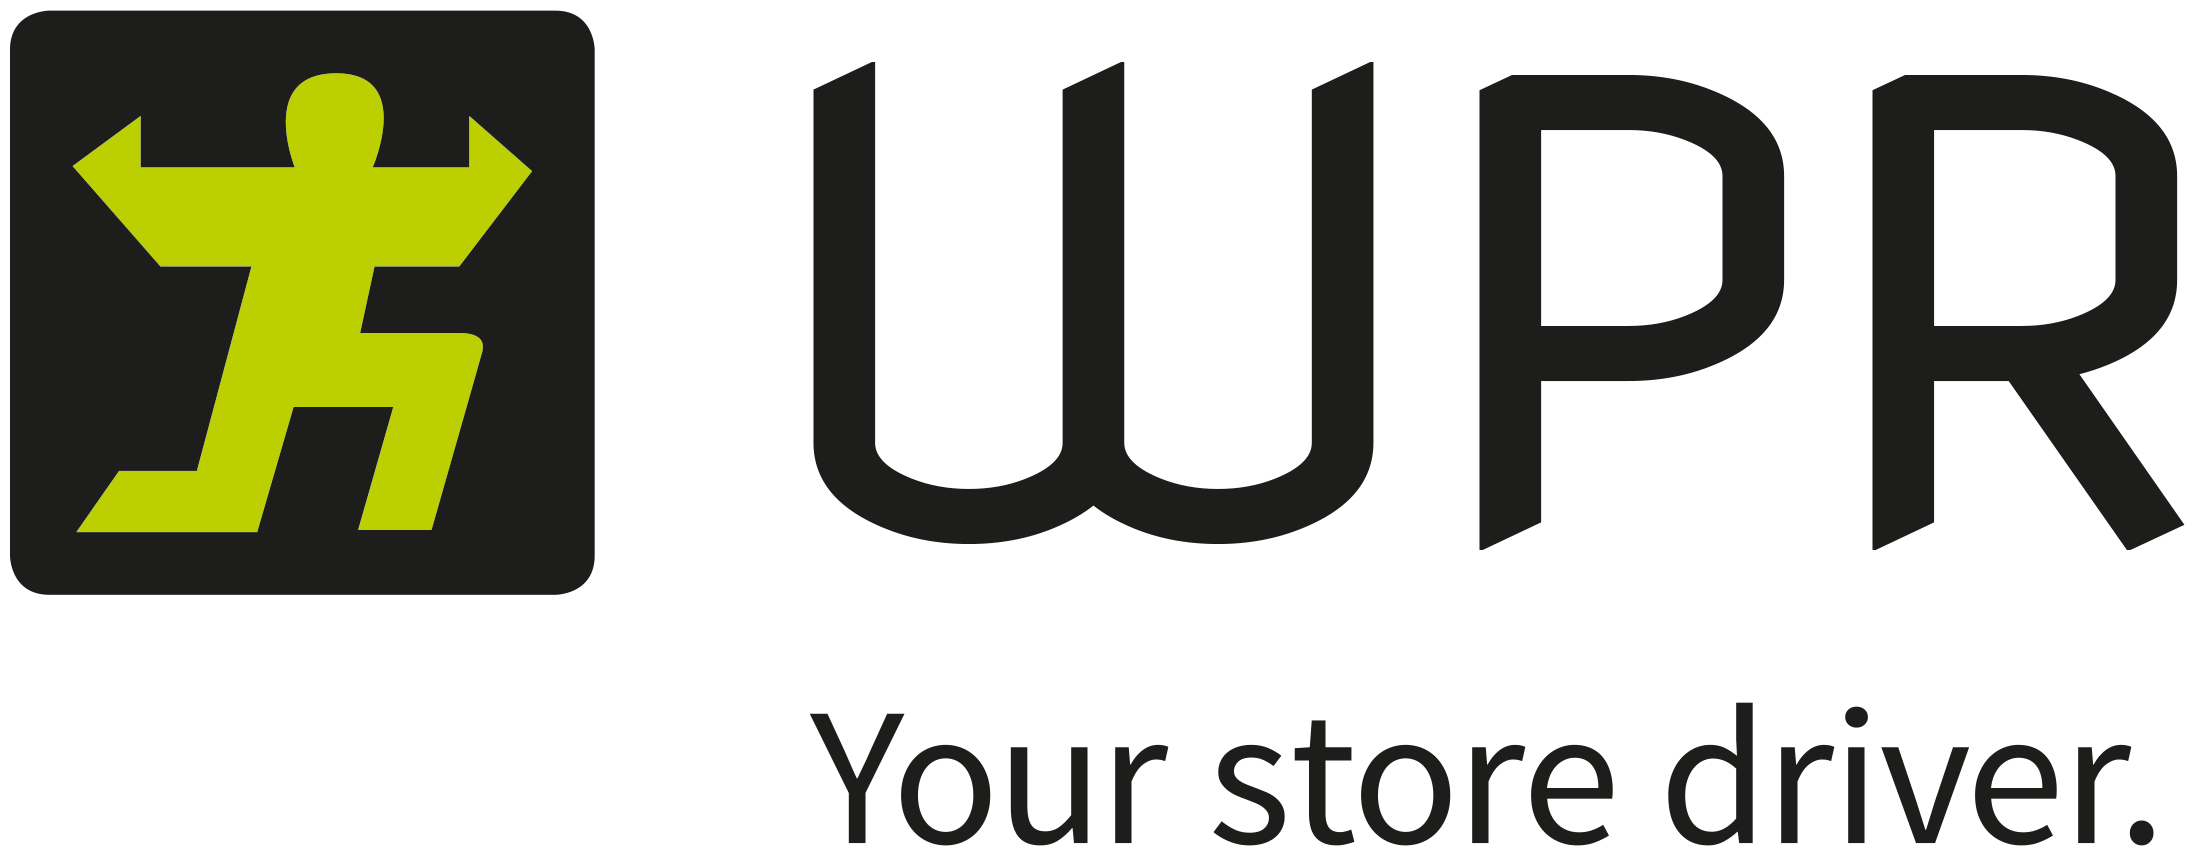 WPR Your Store Driver